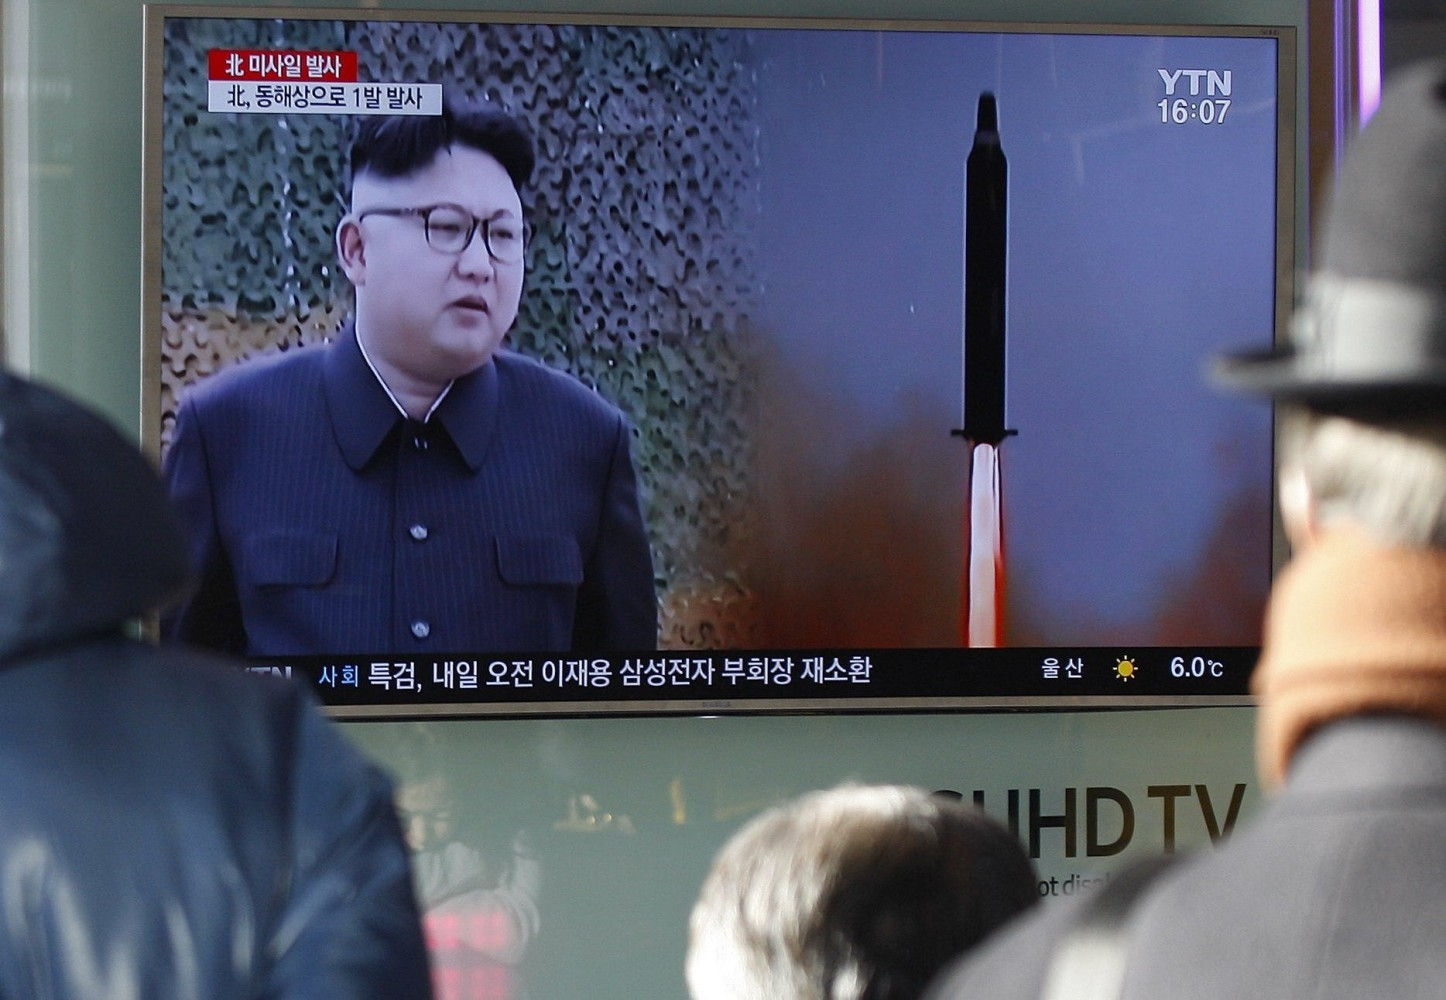 Image North Korean missile launch